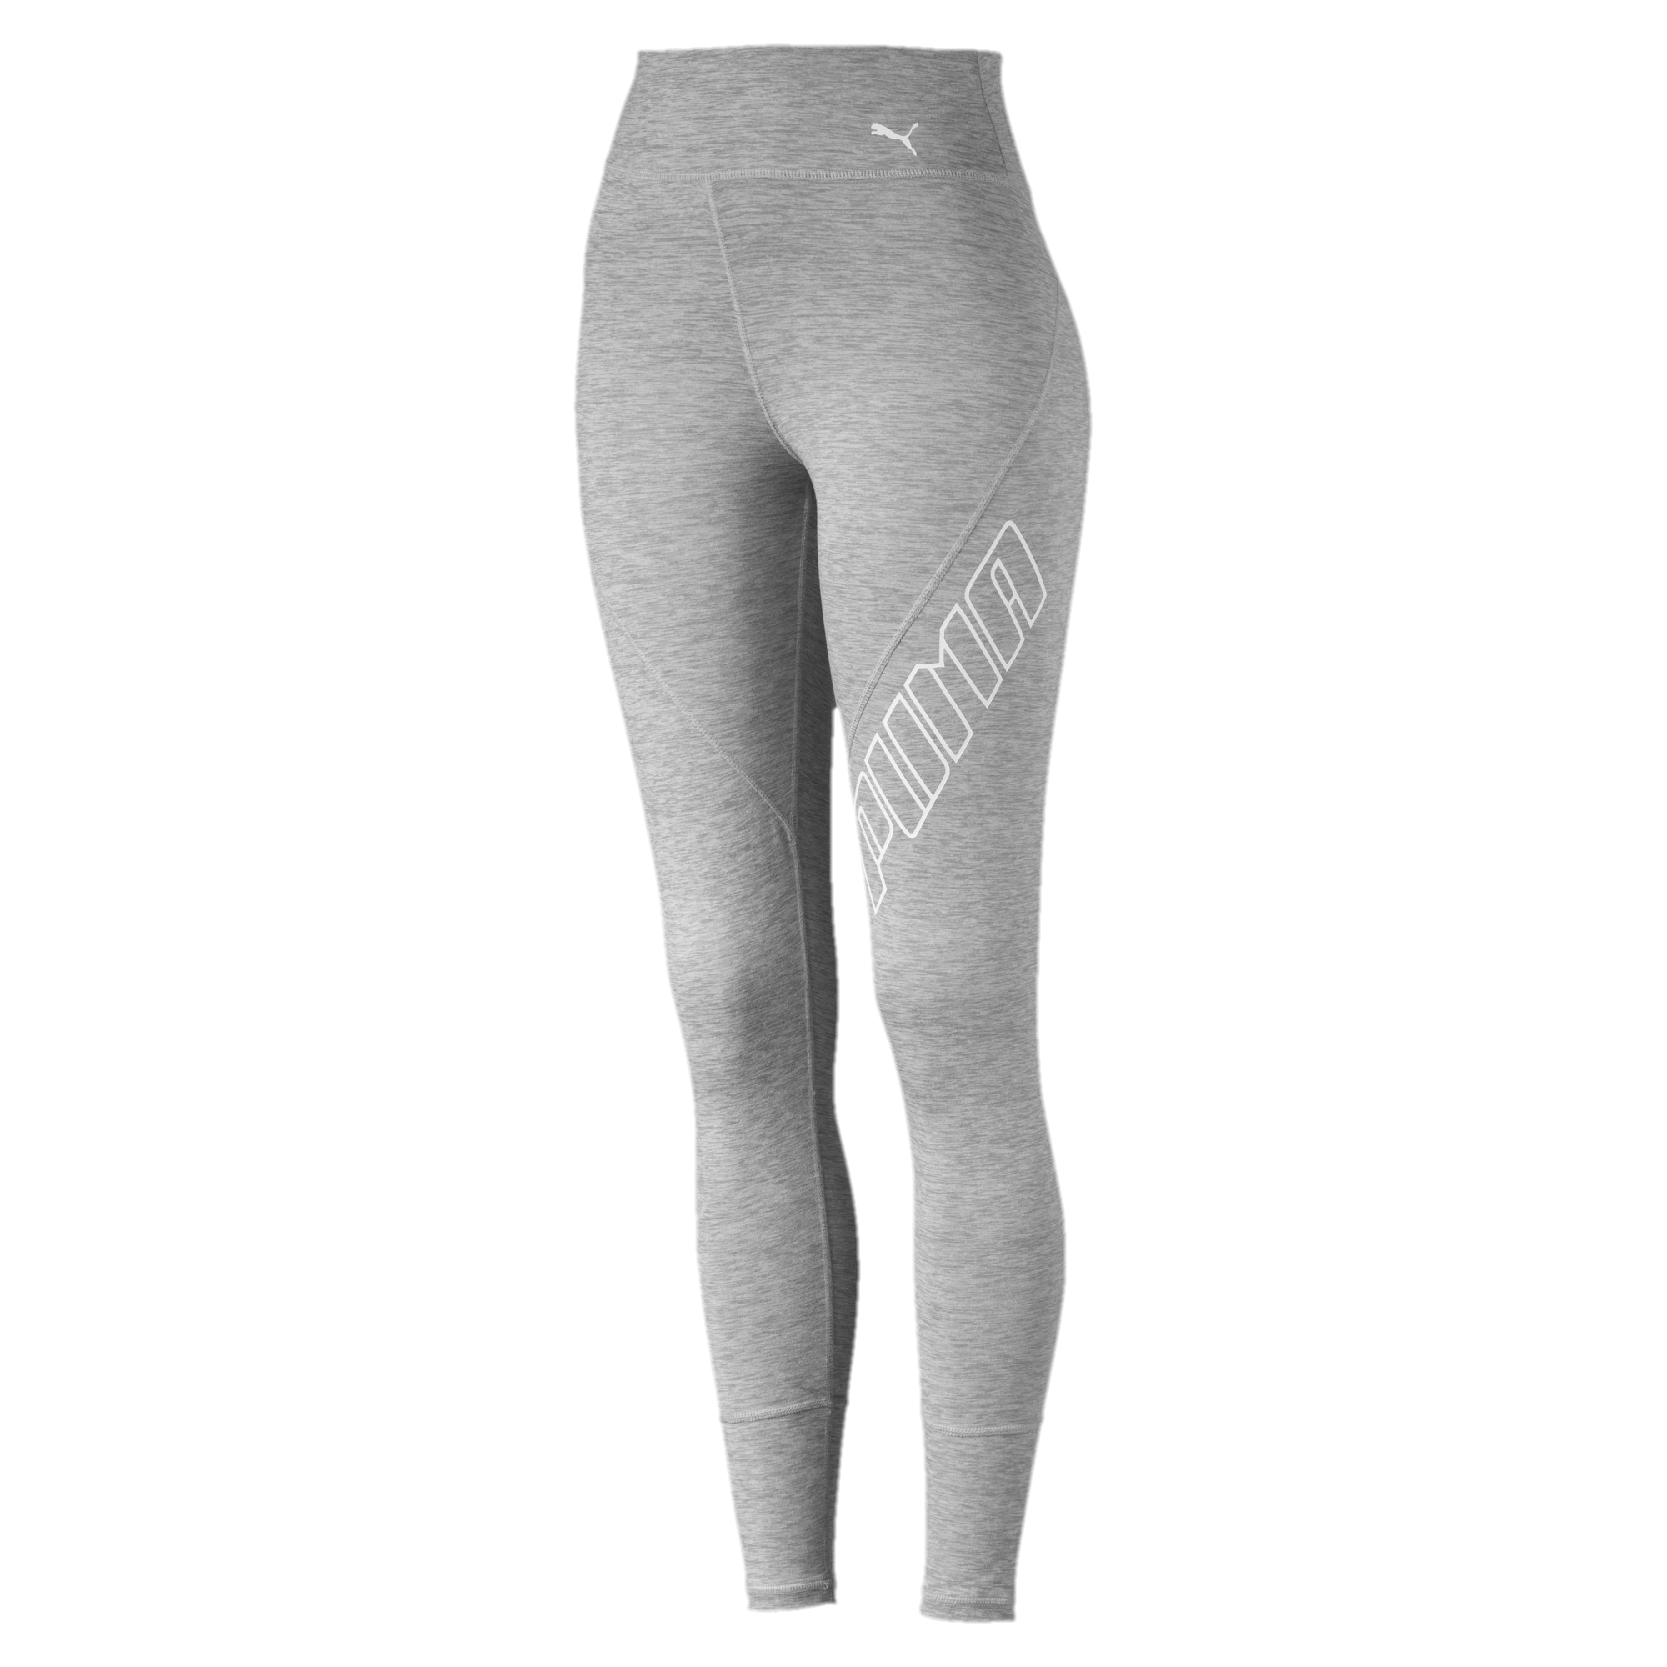 3ec55fef625dc Puma Women's Yogini Logo Fitness Tights - Light Grey | Womens ...